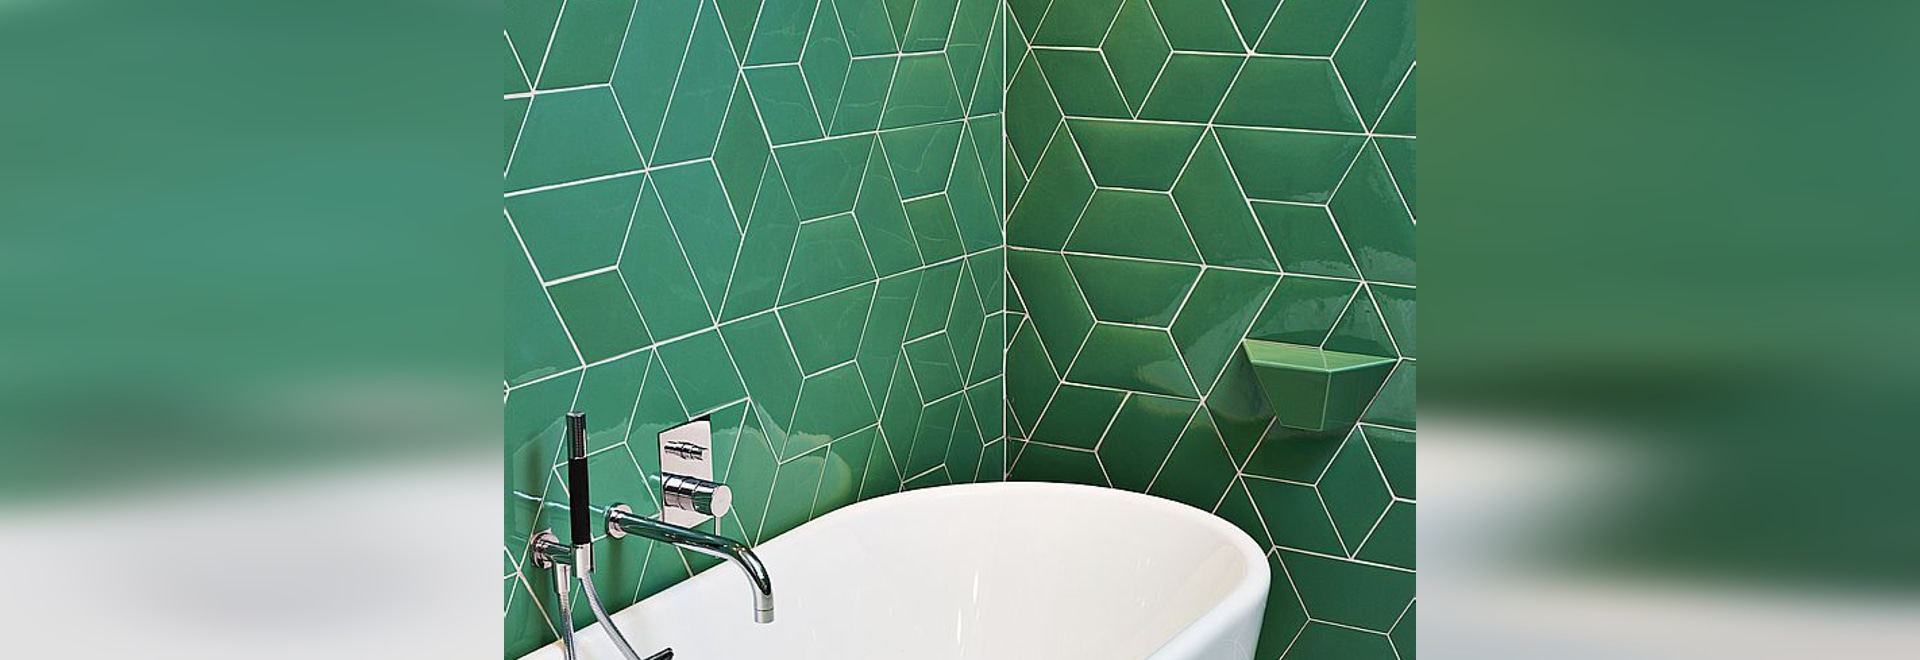 Ceramic tiles - Diamond & Trapezium 2D-3D - Normandy Ceramics ...